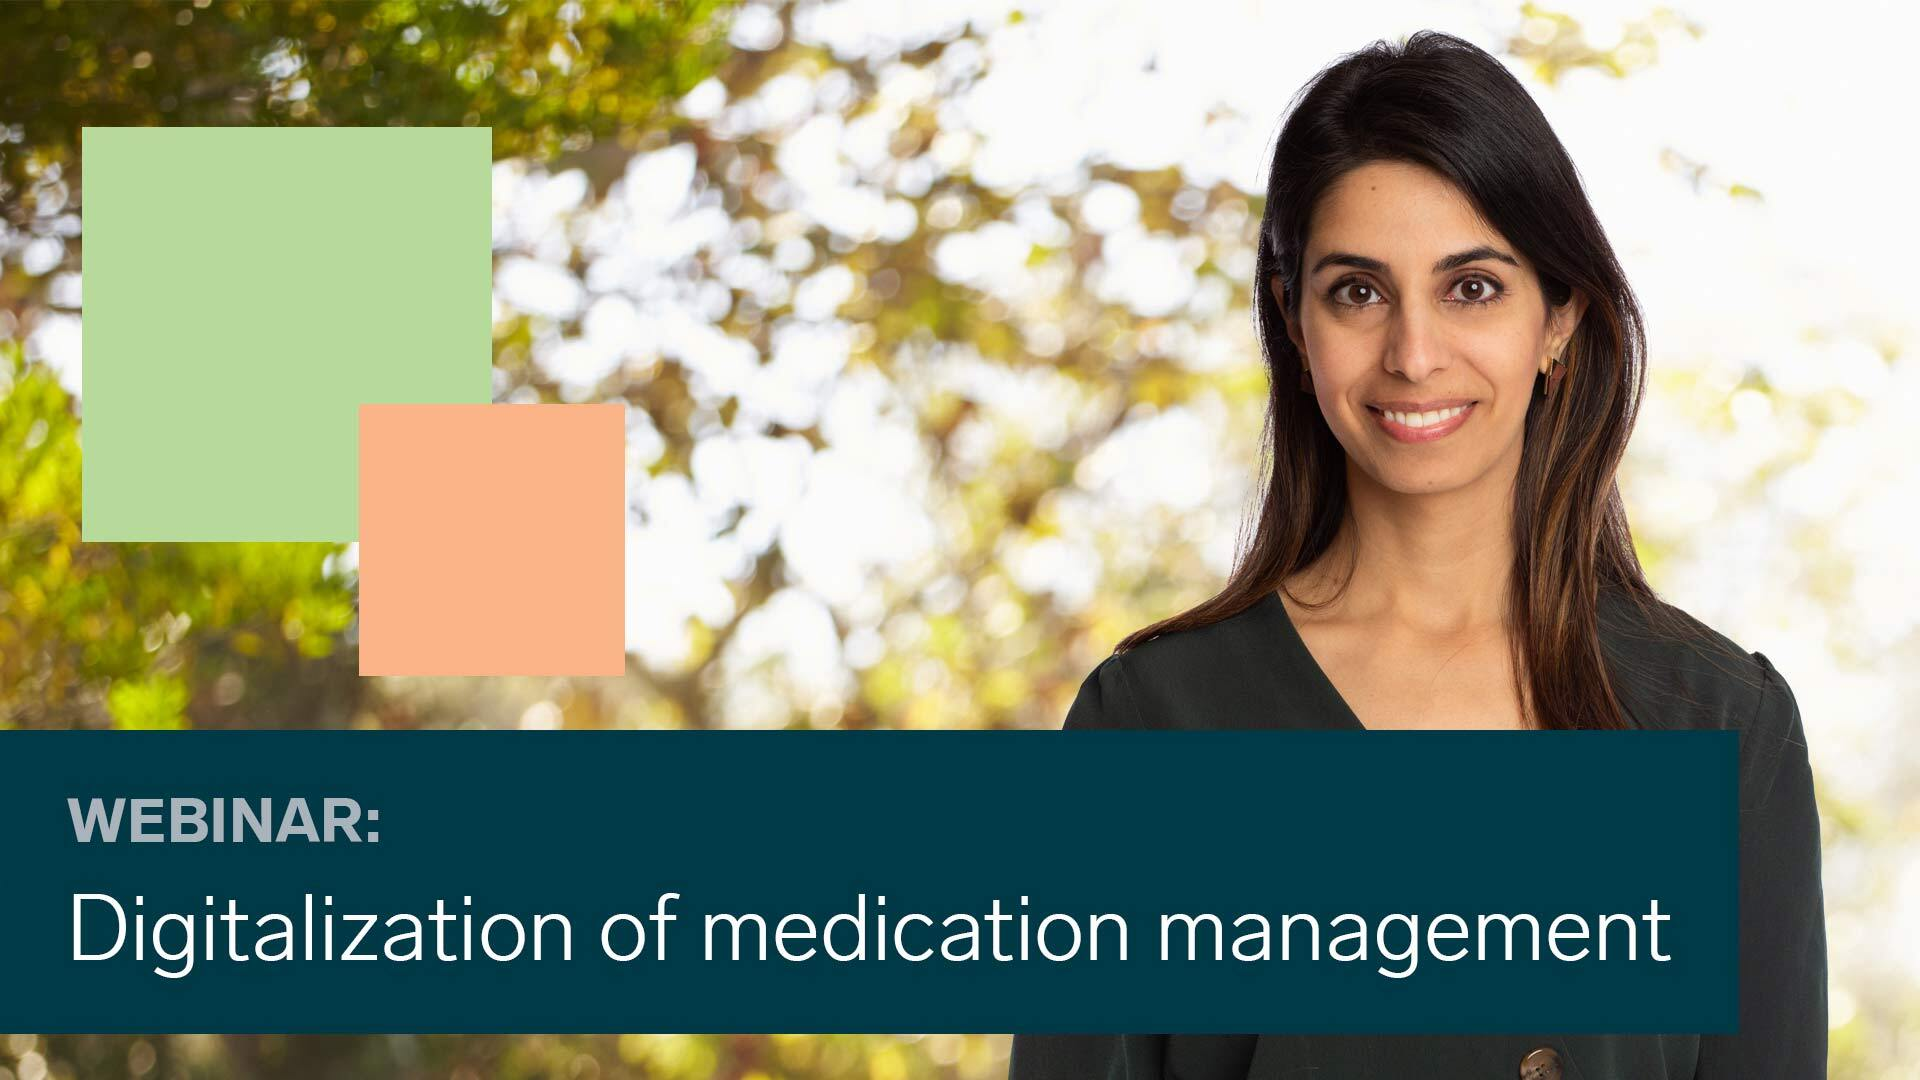 Dr. Sally Rafie is a pharmacist specialist in medication safety.